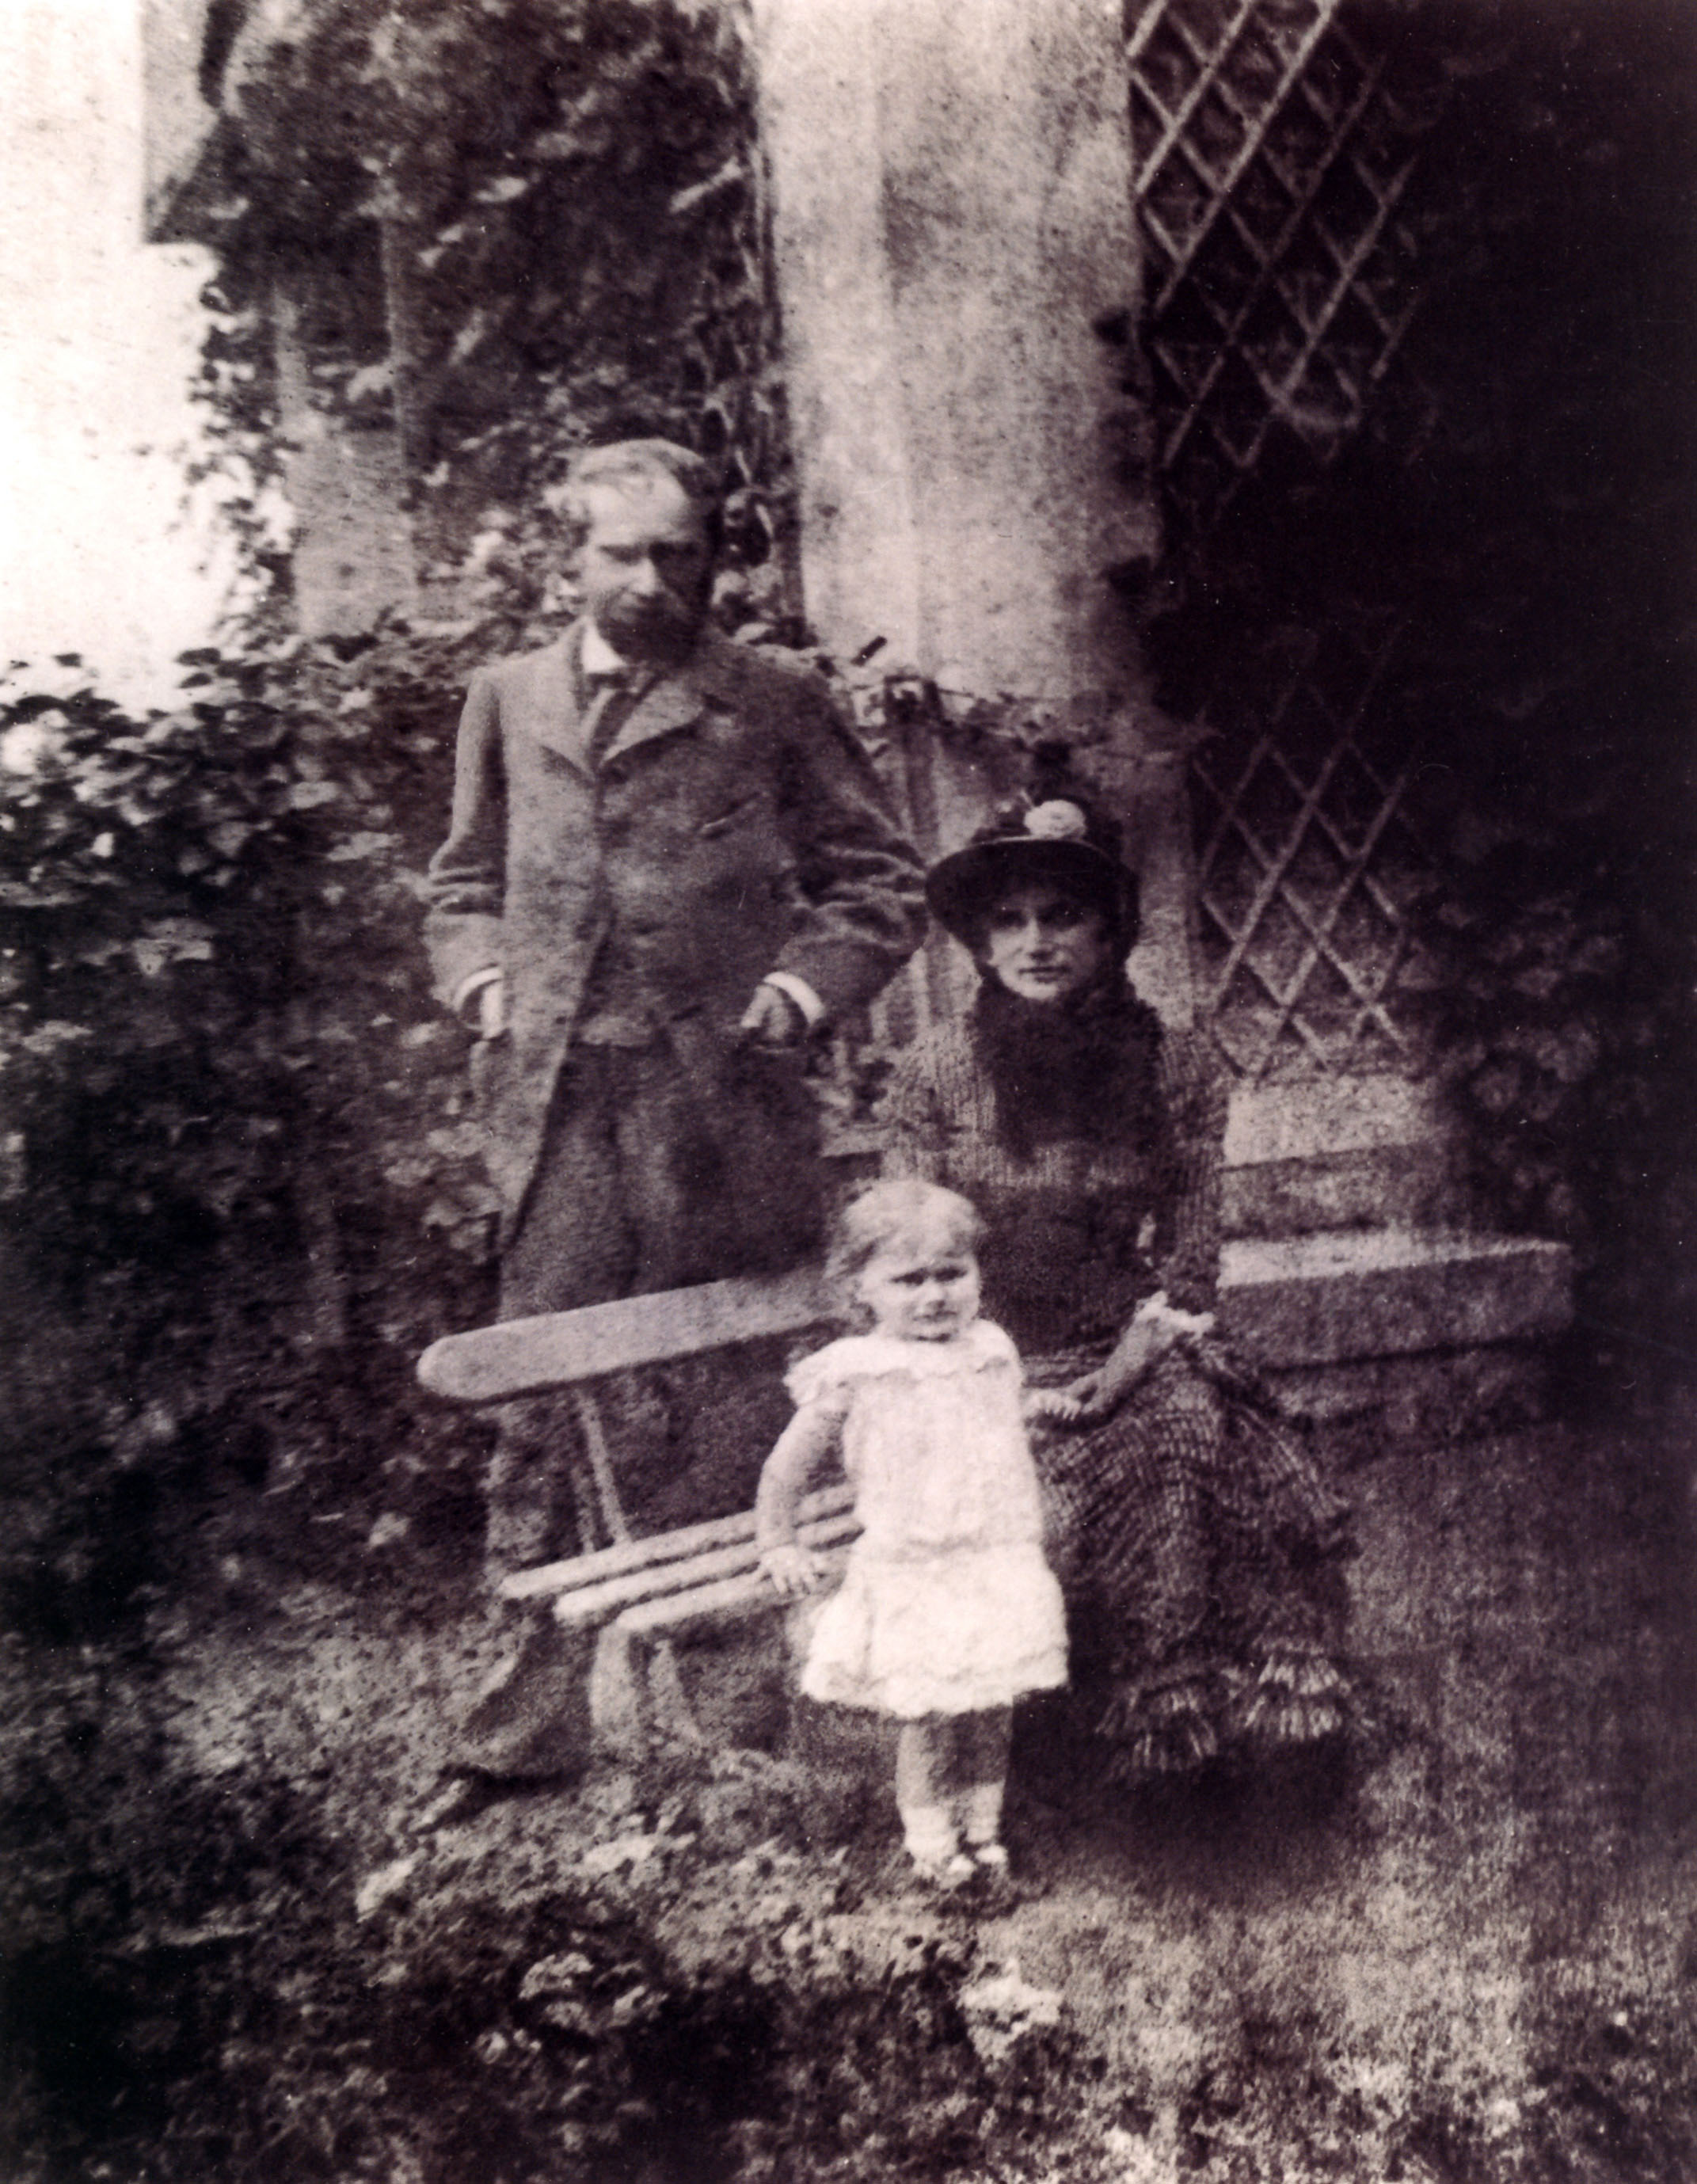 Eugène Manet, Berthe Morisot & their daughter Julie Manet ...